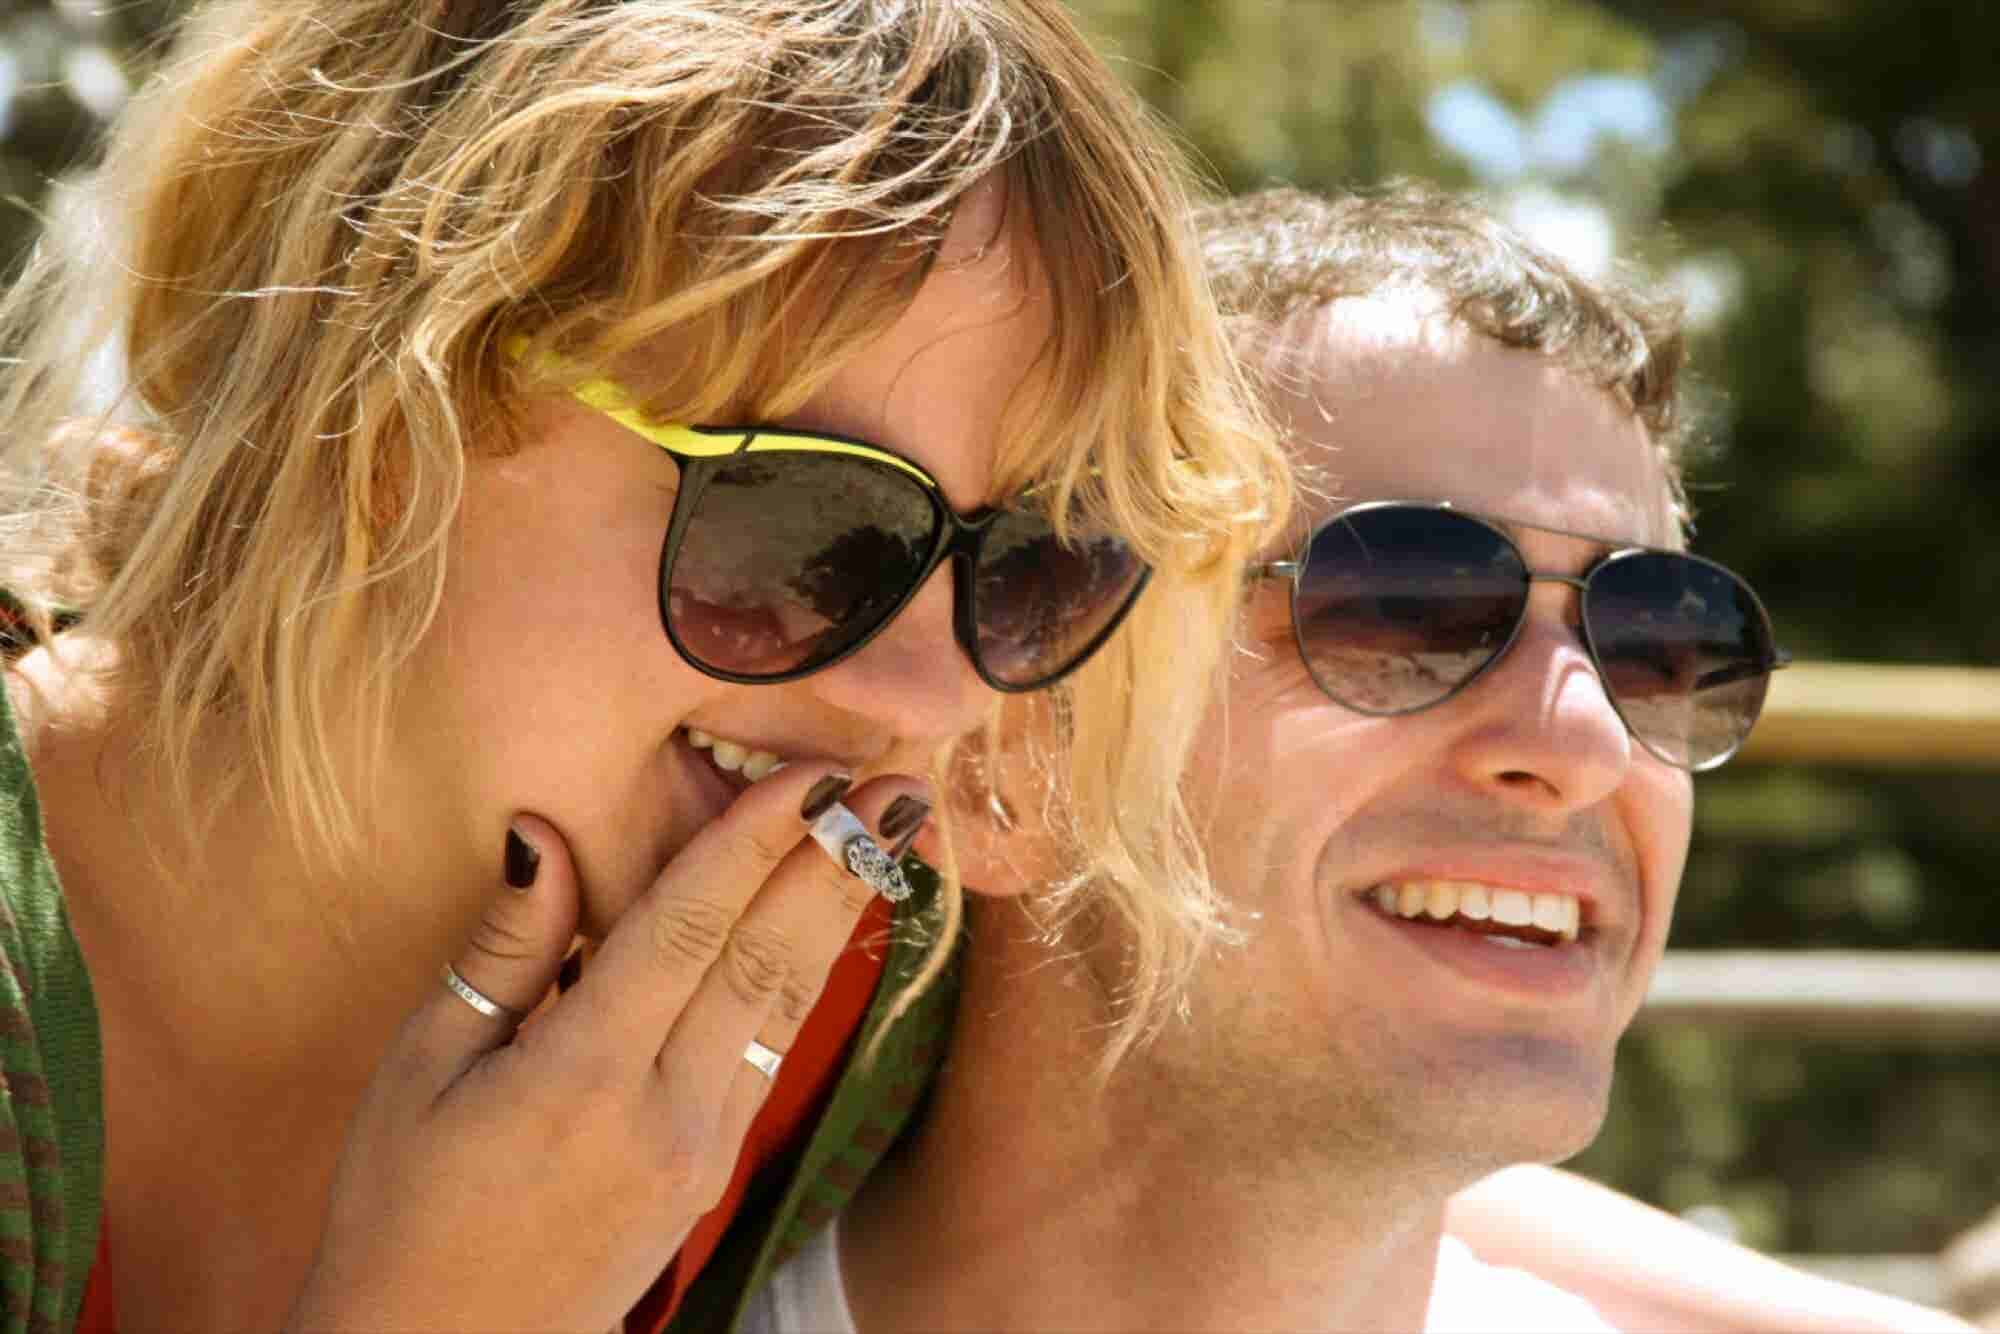 6 New Social Apps to Help Cannabis Lovers Find Each Other